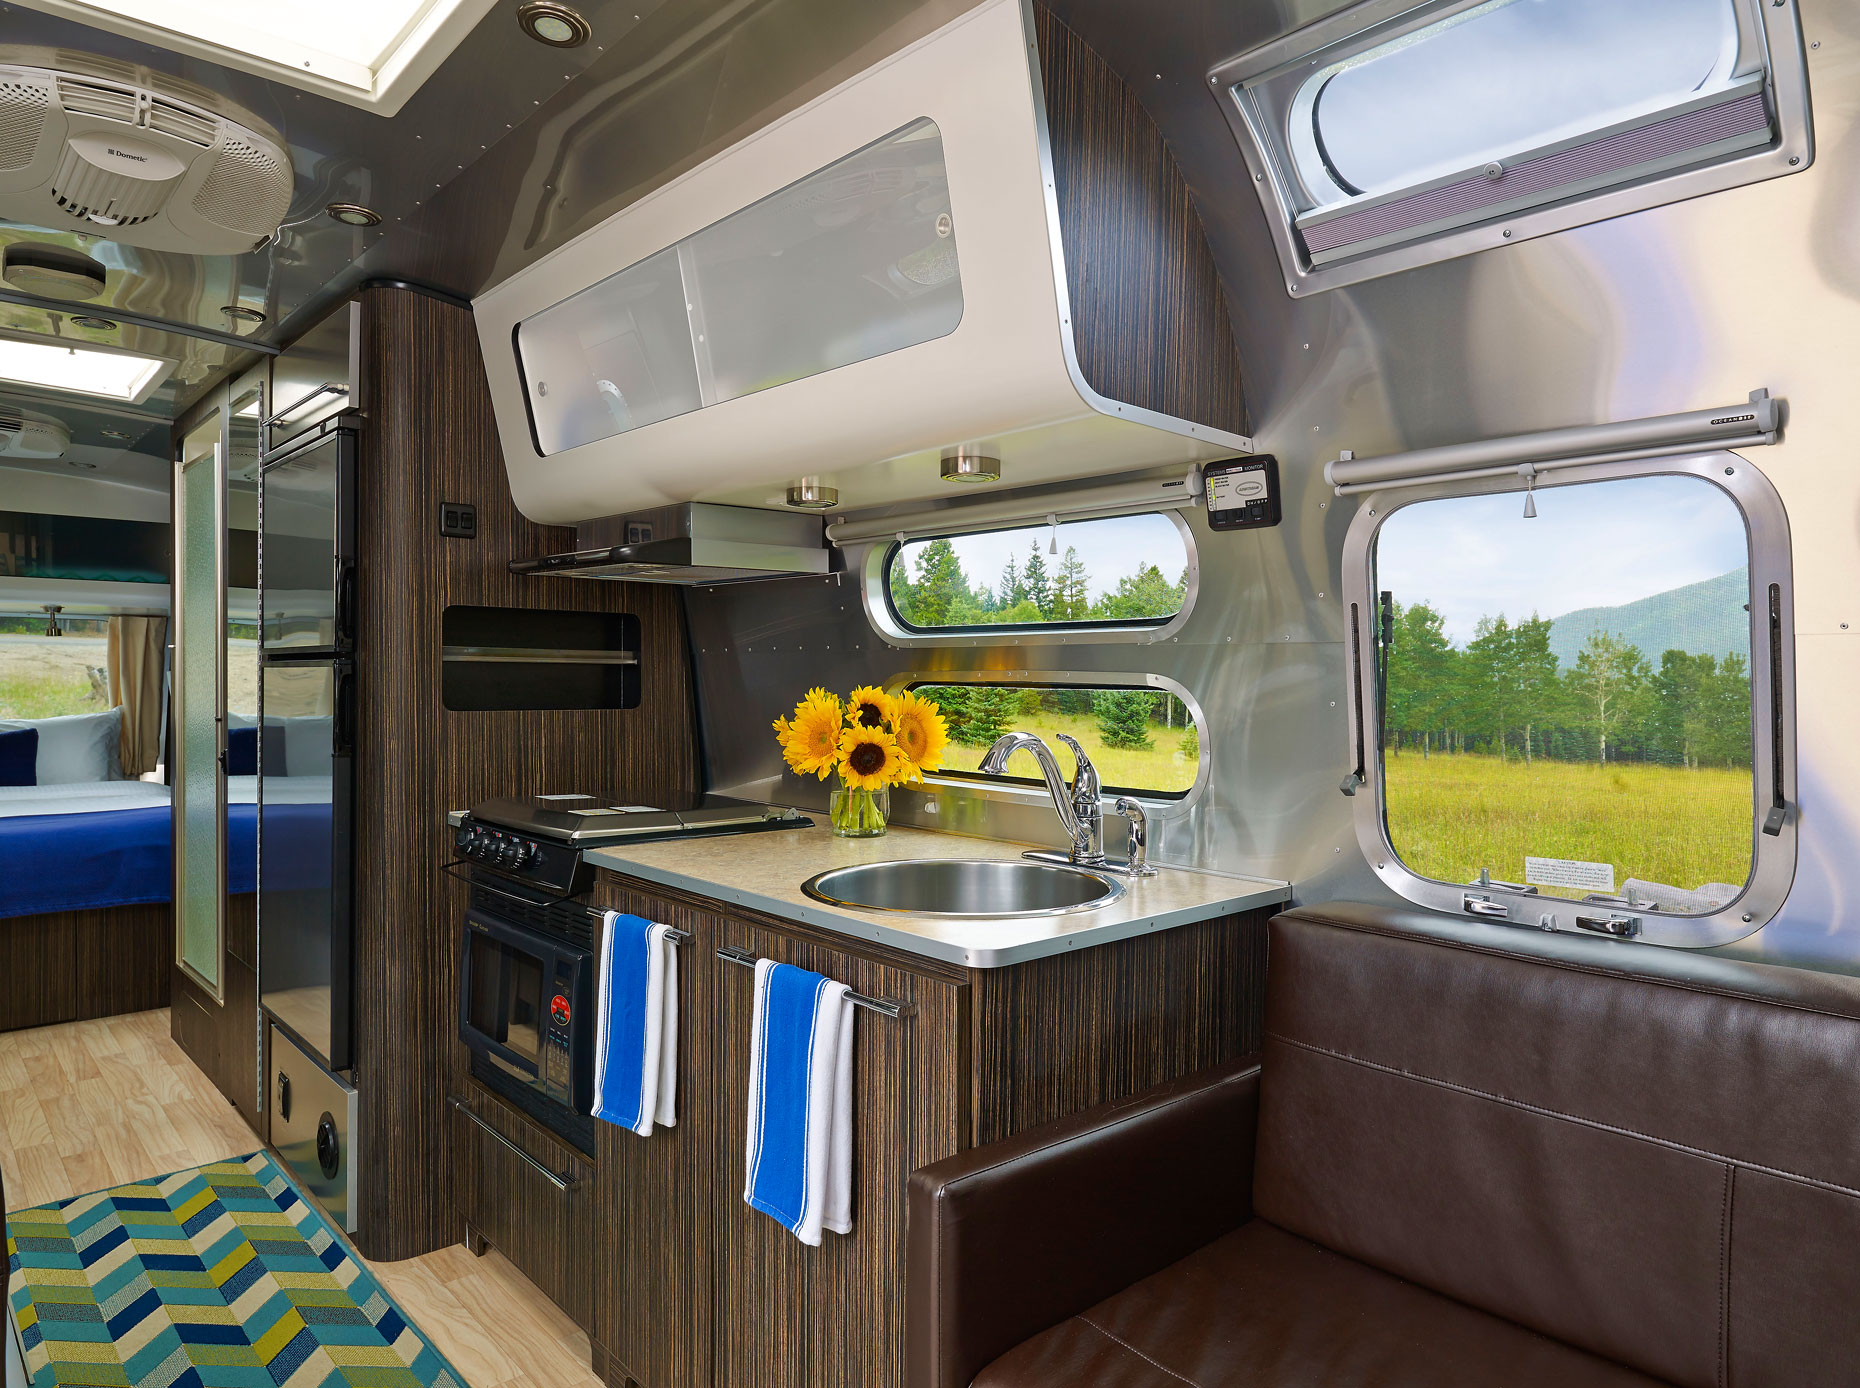 ER_airstream_interior-2_hr